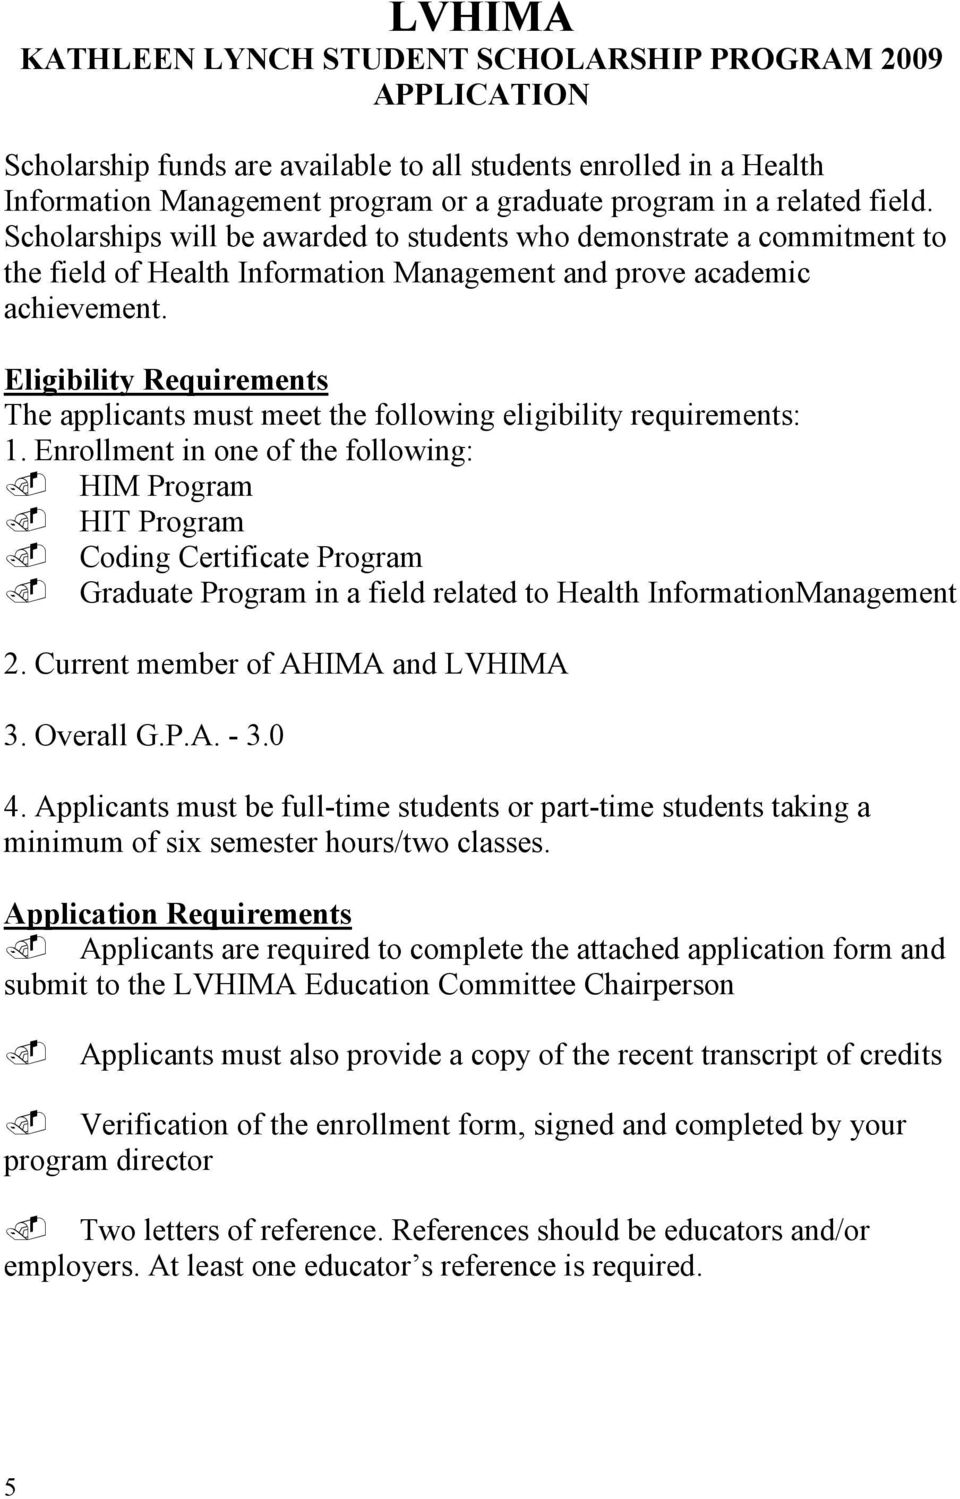 Eligibility Requirements The applicants must meet the following eligibility requirements: 1.